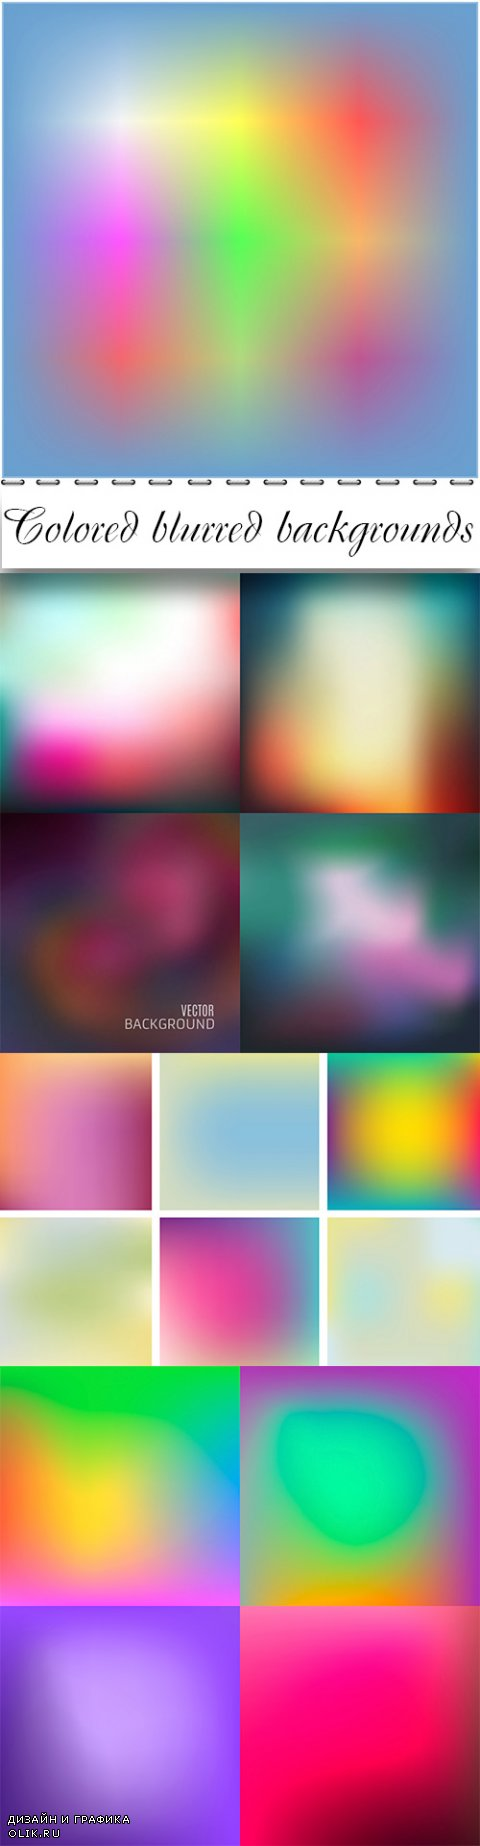 Colored blurred vector backgrounds